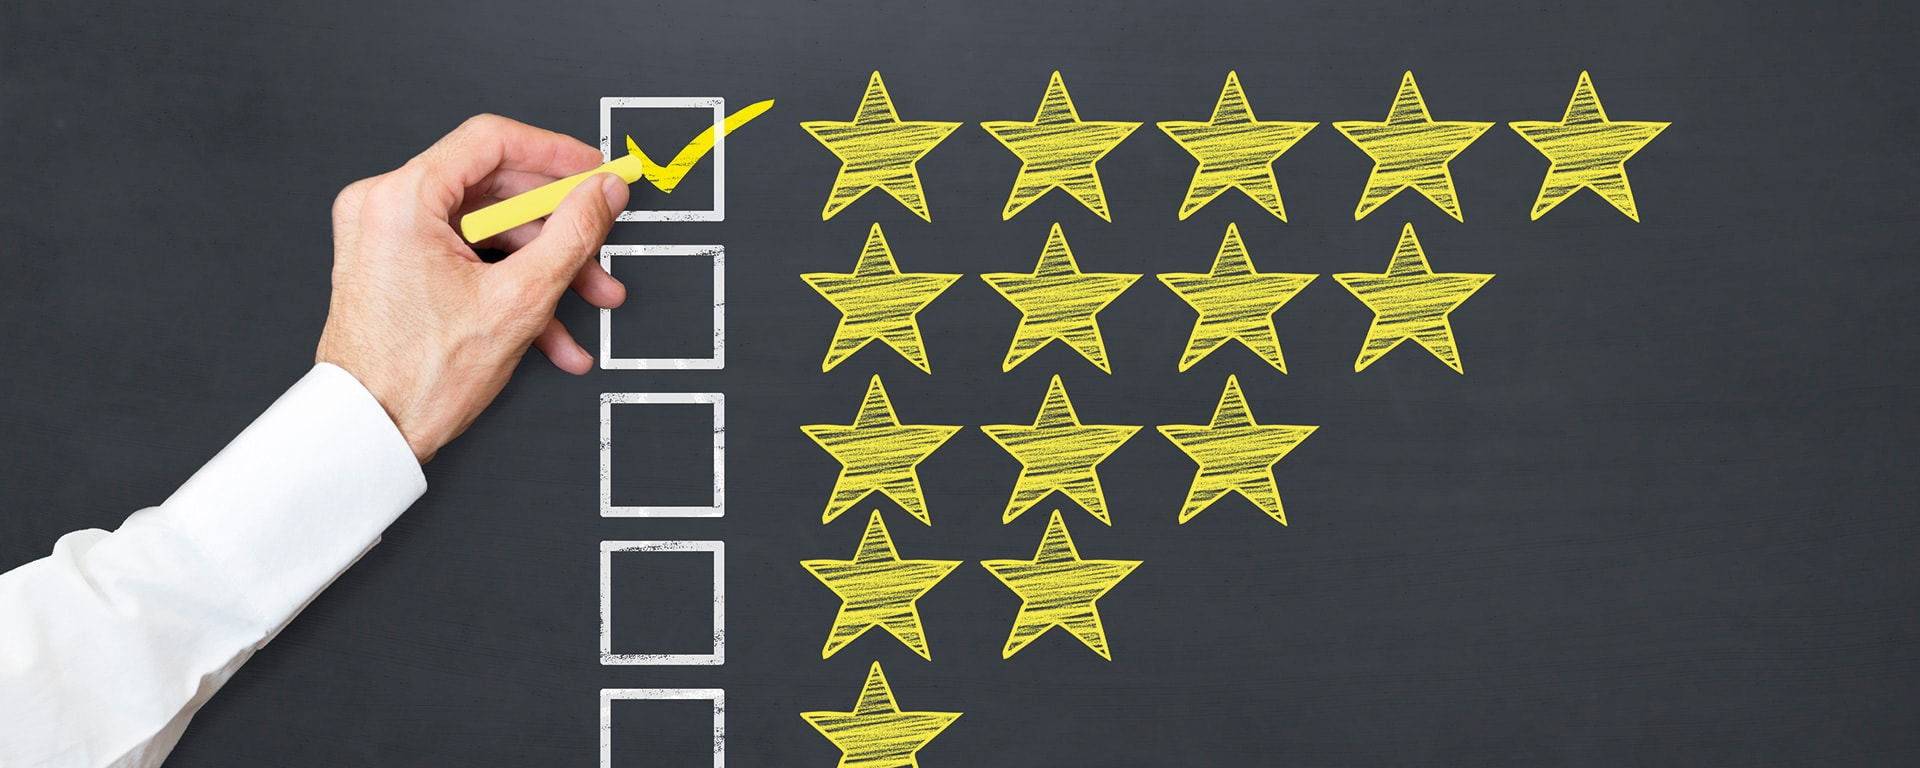 successful BPM implementation blog post - five stars image